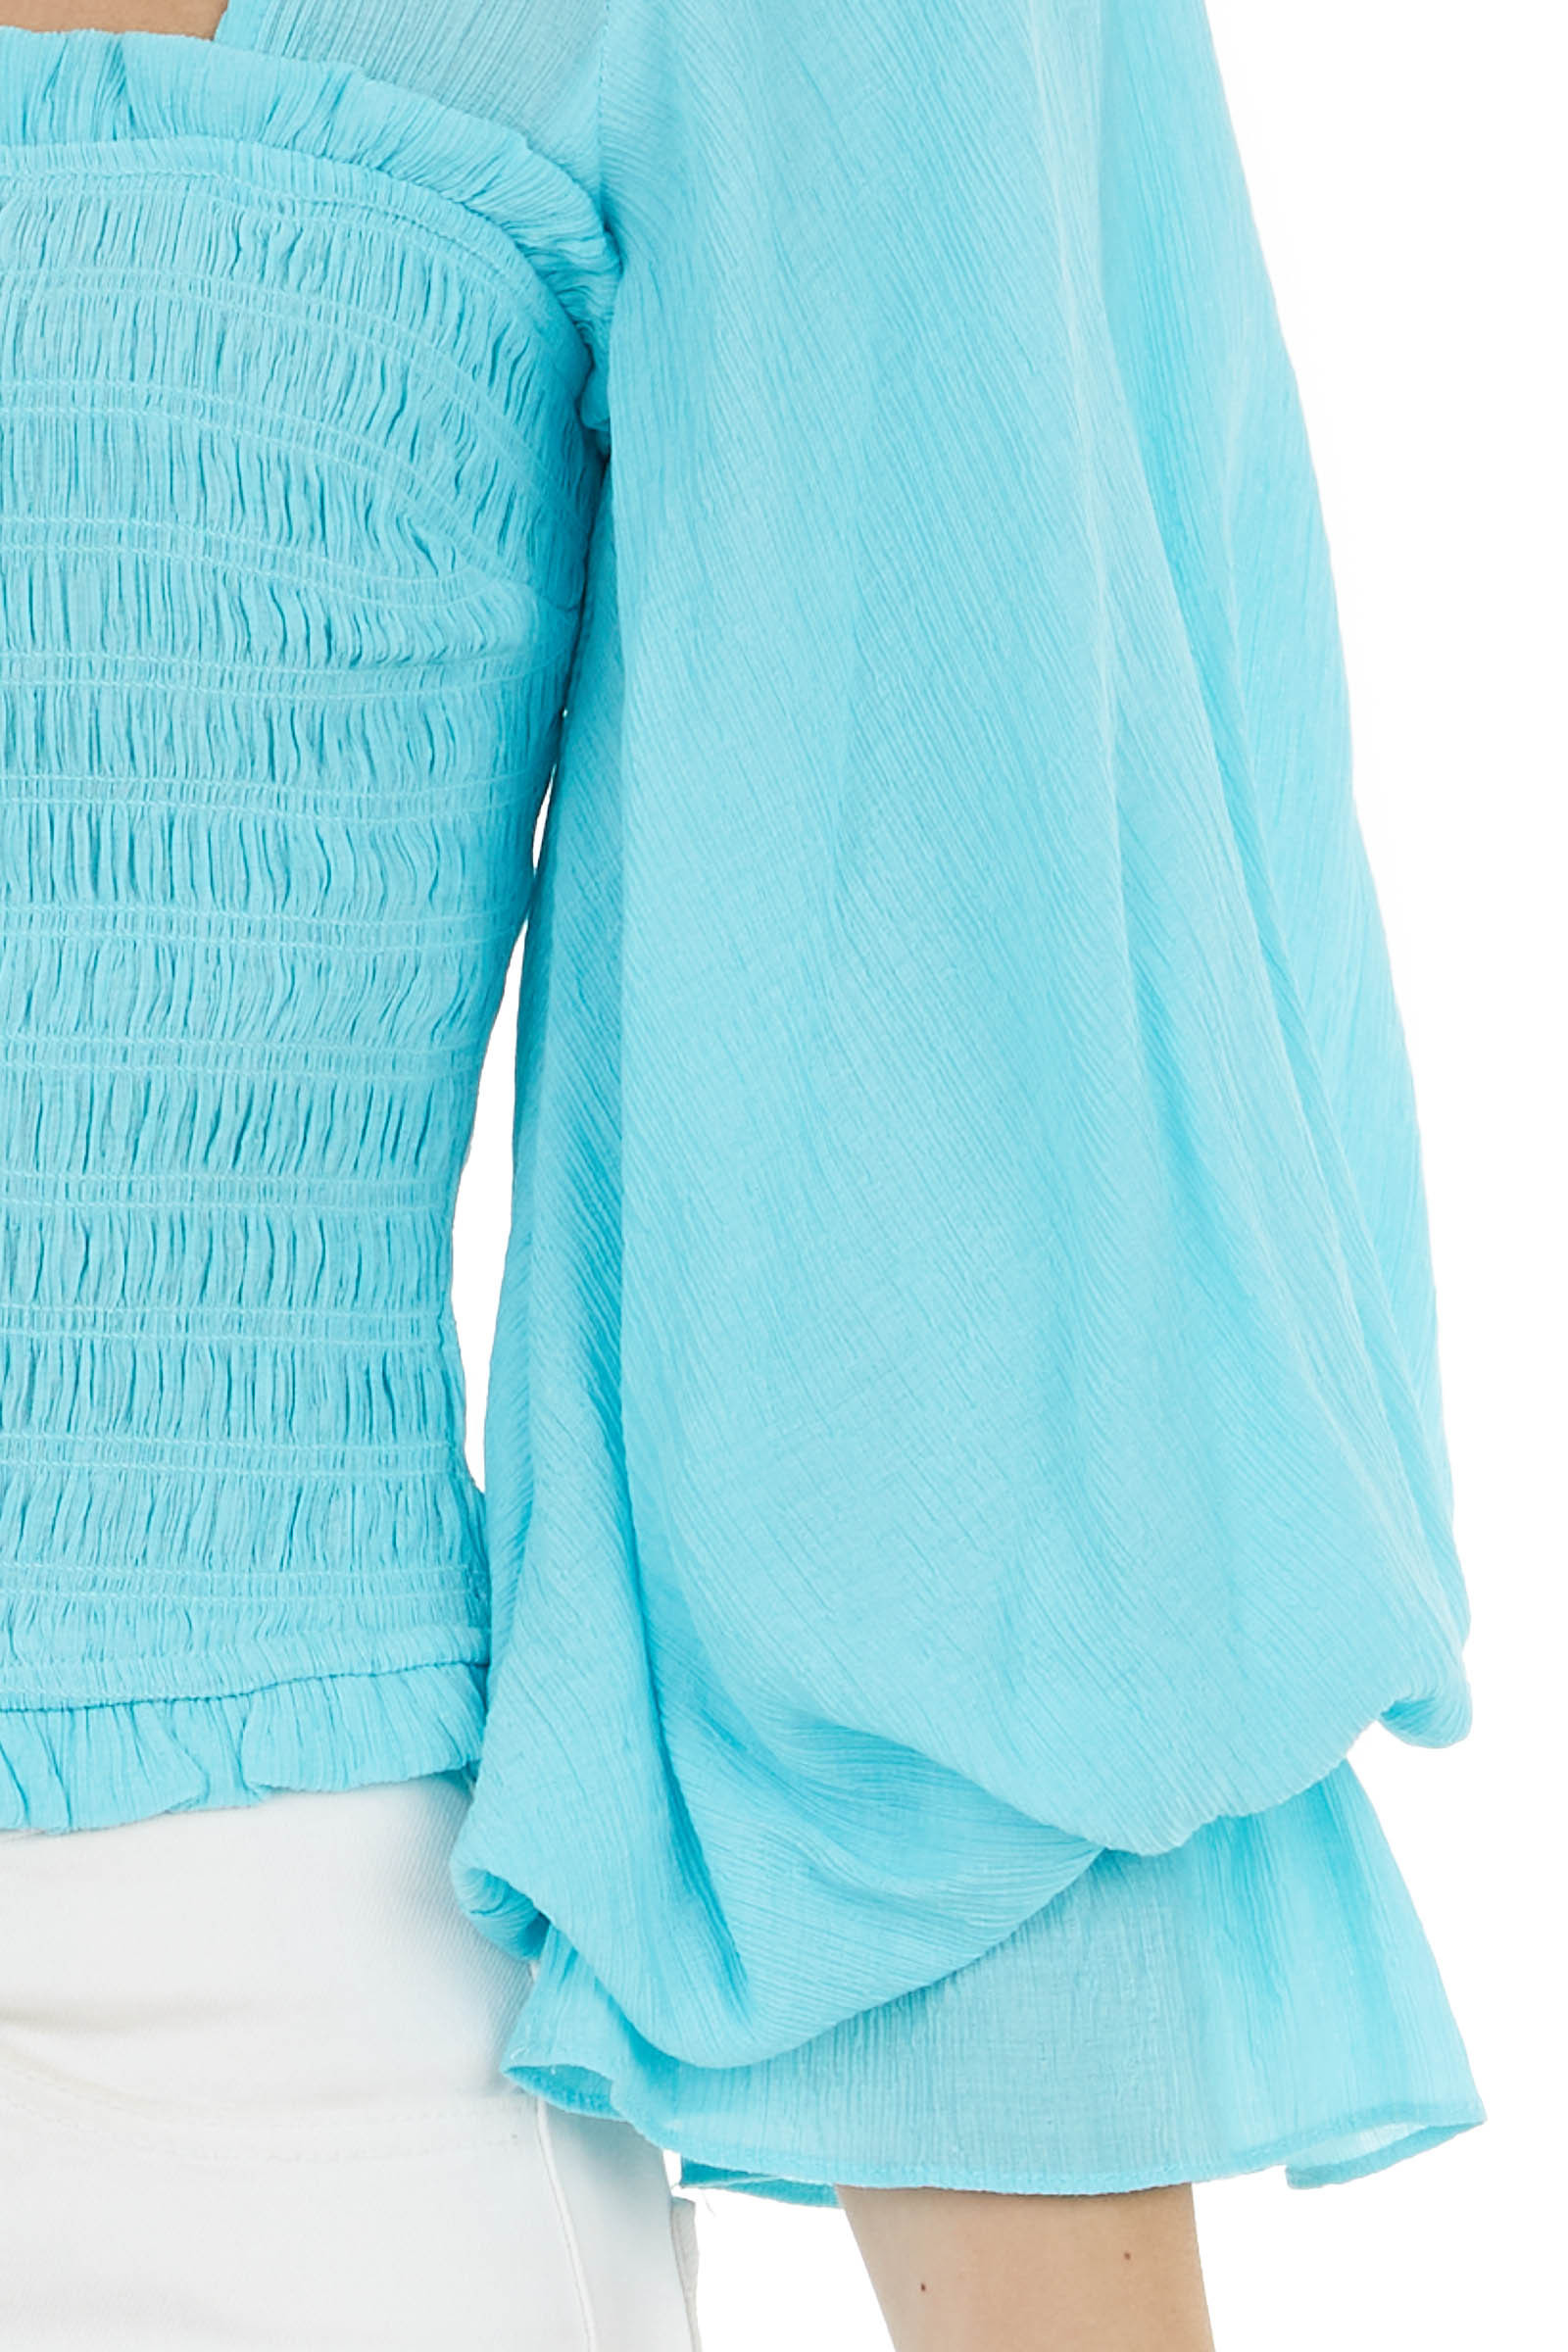 Turquoise Textured Smocked Top with Long Puff Sleeves